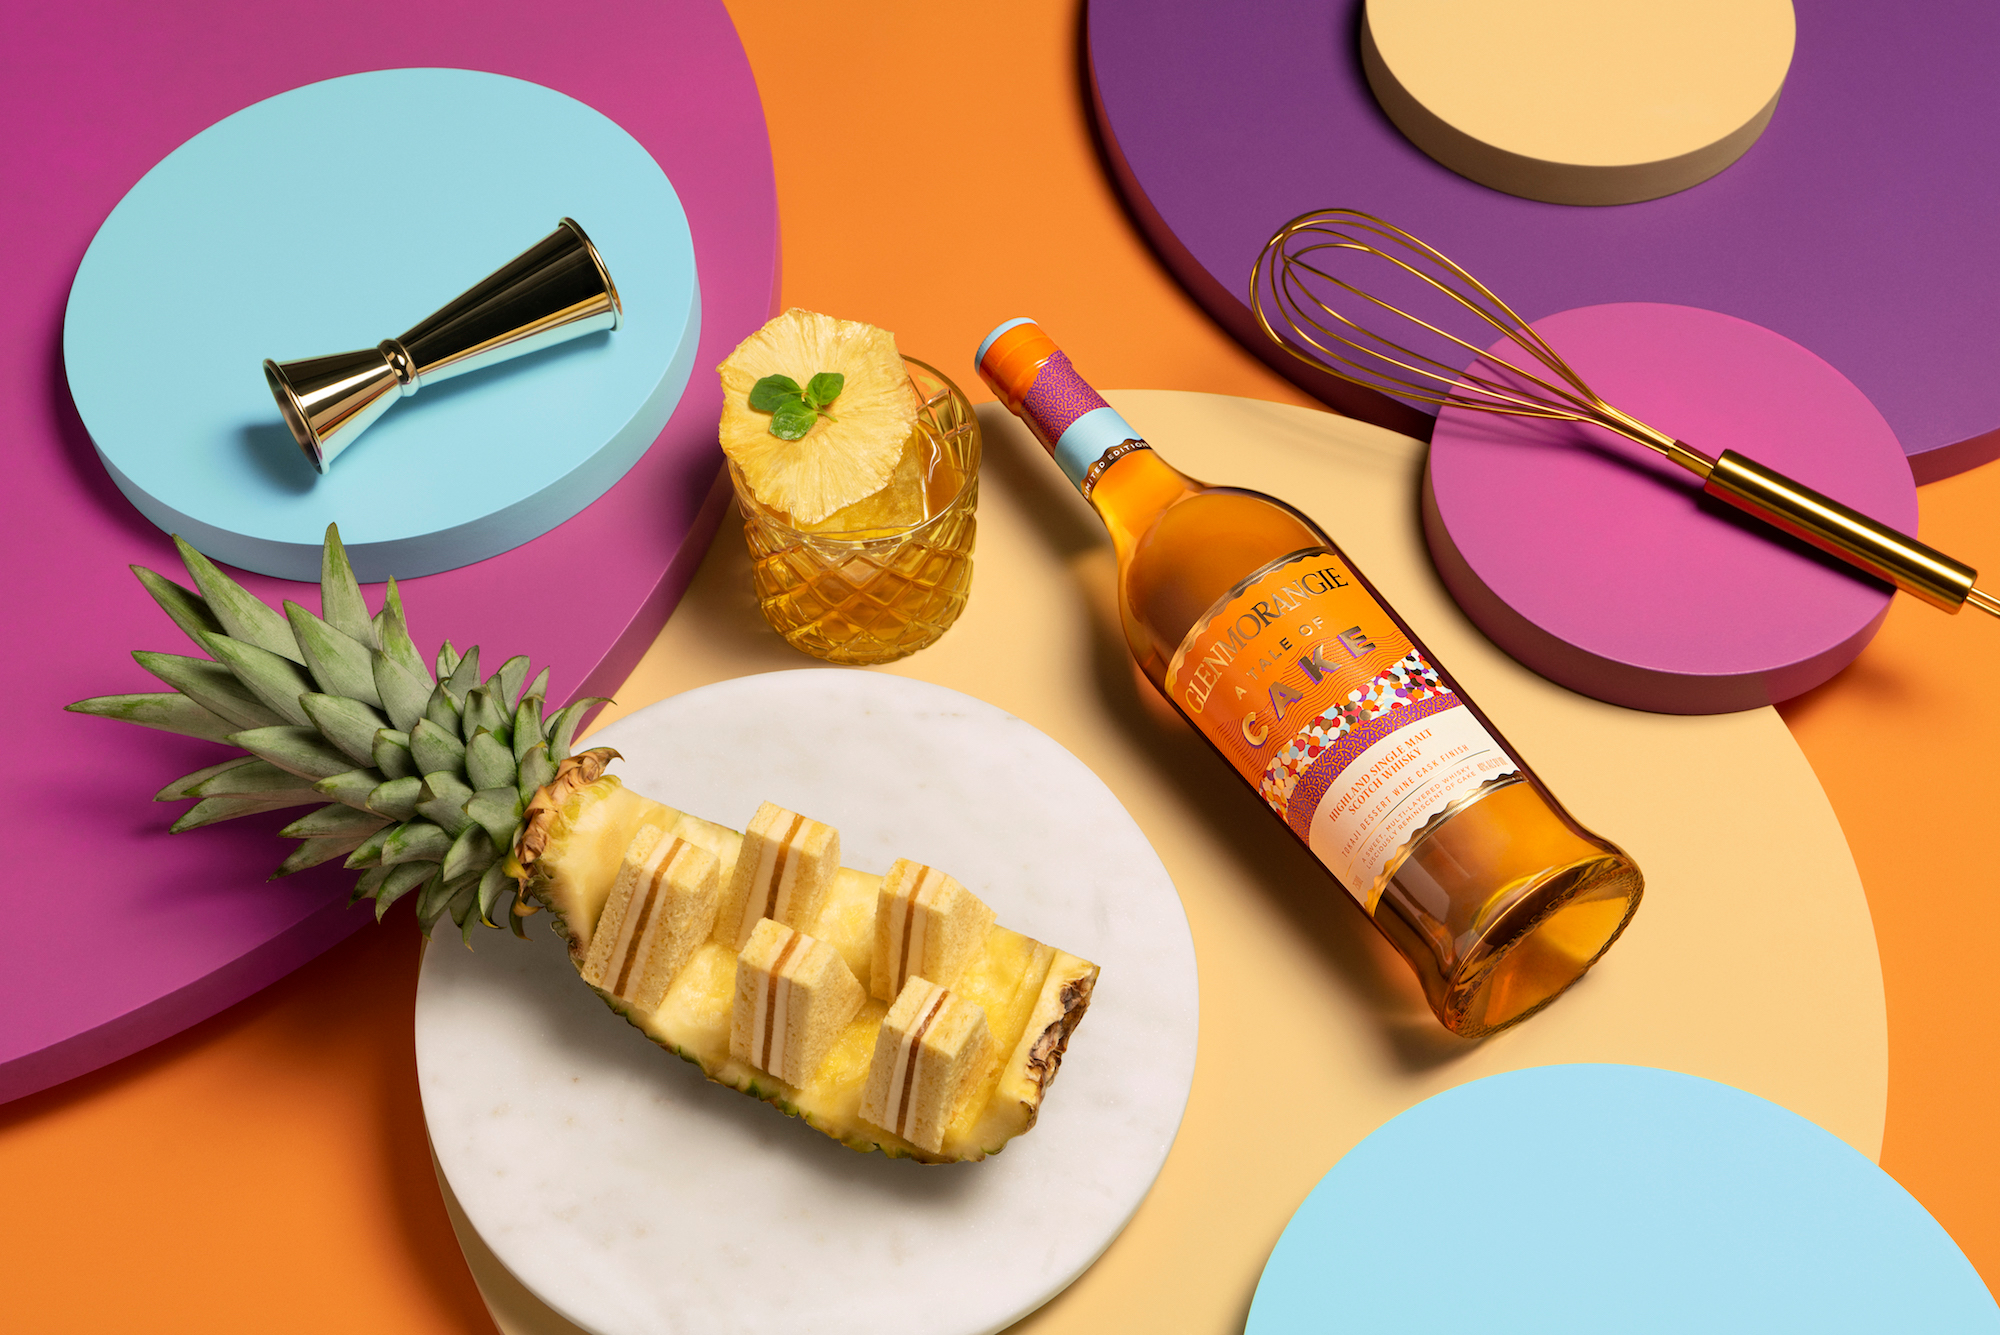 A Tale of Cake by Glenmorangie has been paired with a pineapple boat cake